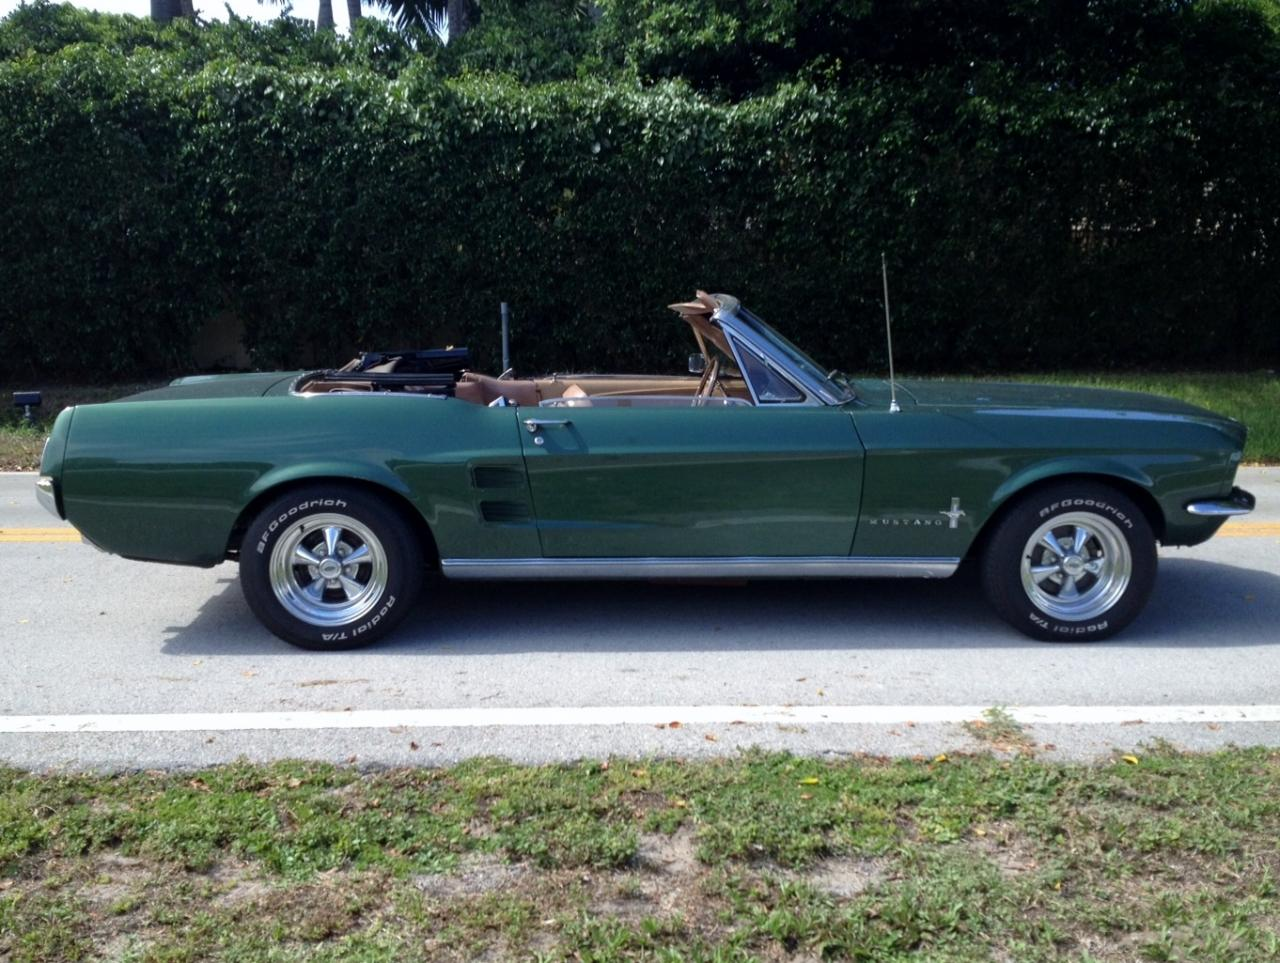 1967 Mustang Convertible - Completely Restored! For Sale